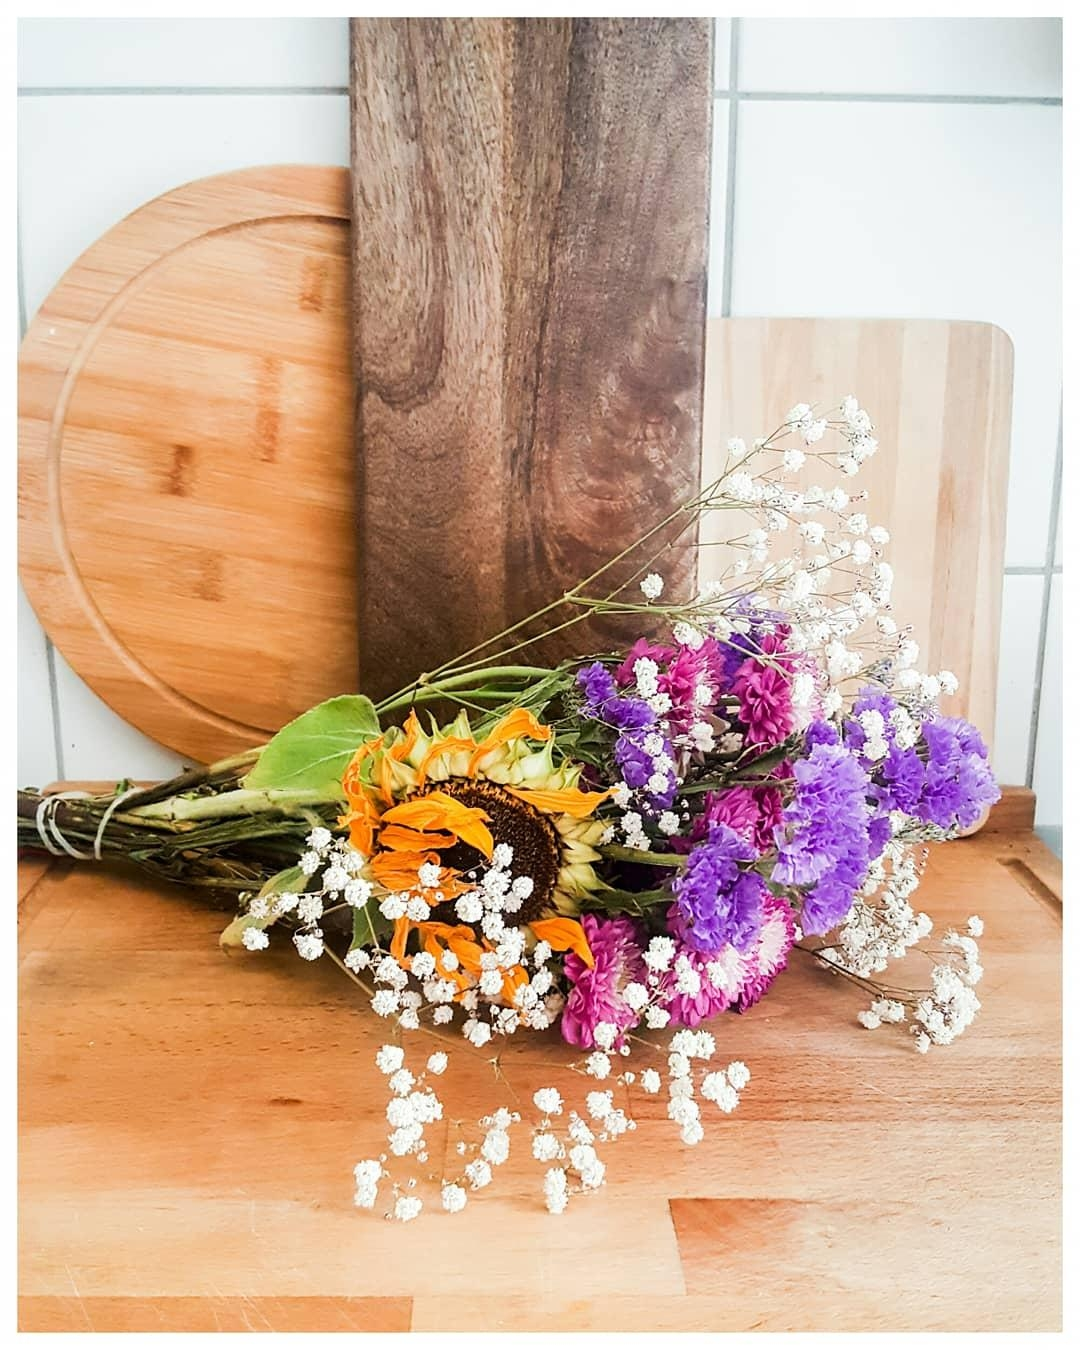 #flowers#wood#kitchen